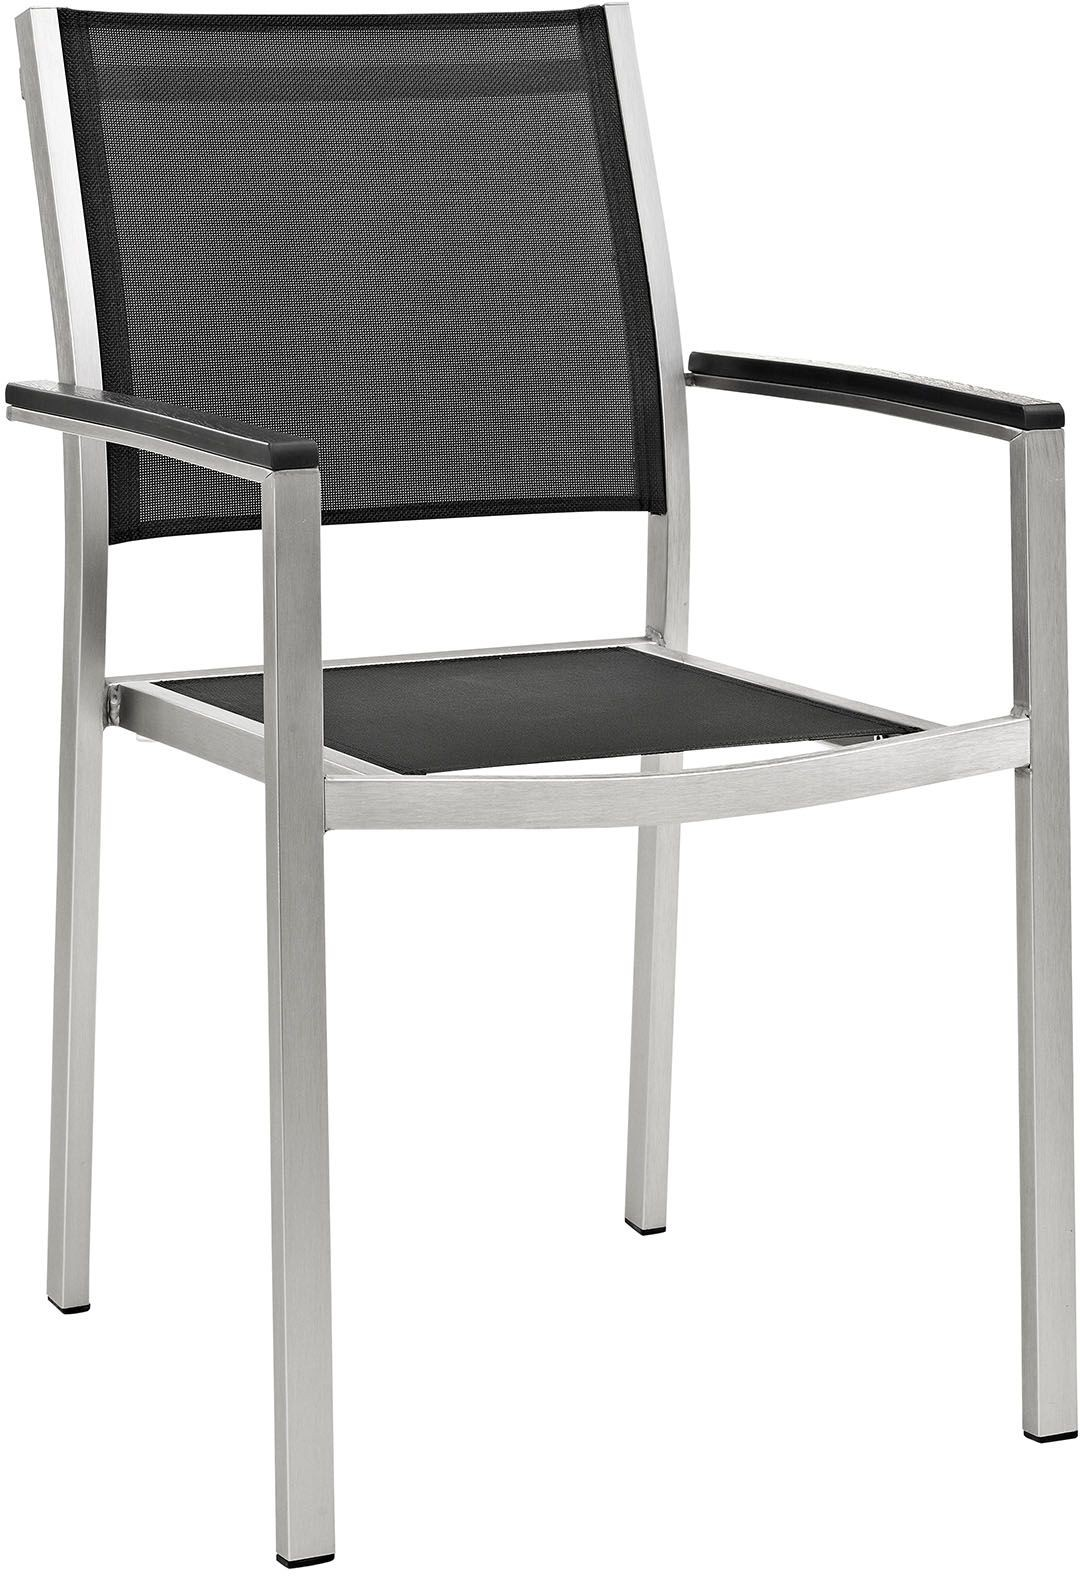 Black Metal Patio Chairs Shore Silver Black Aluminum Outdoor Patio Dining Chair